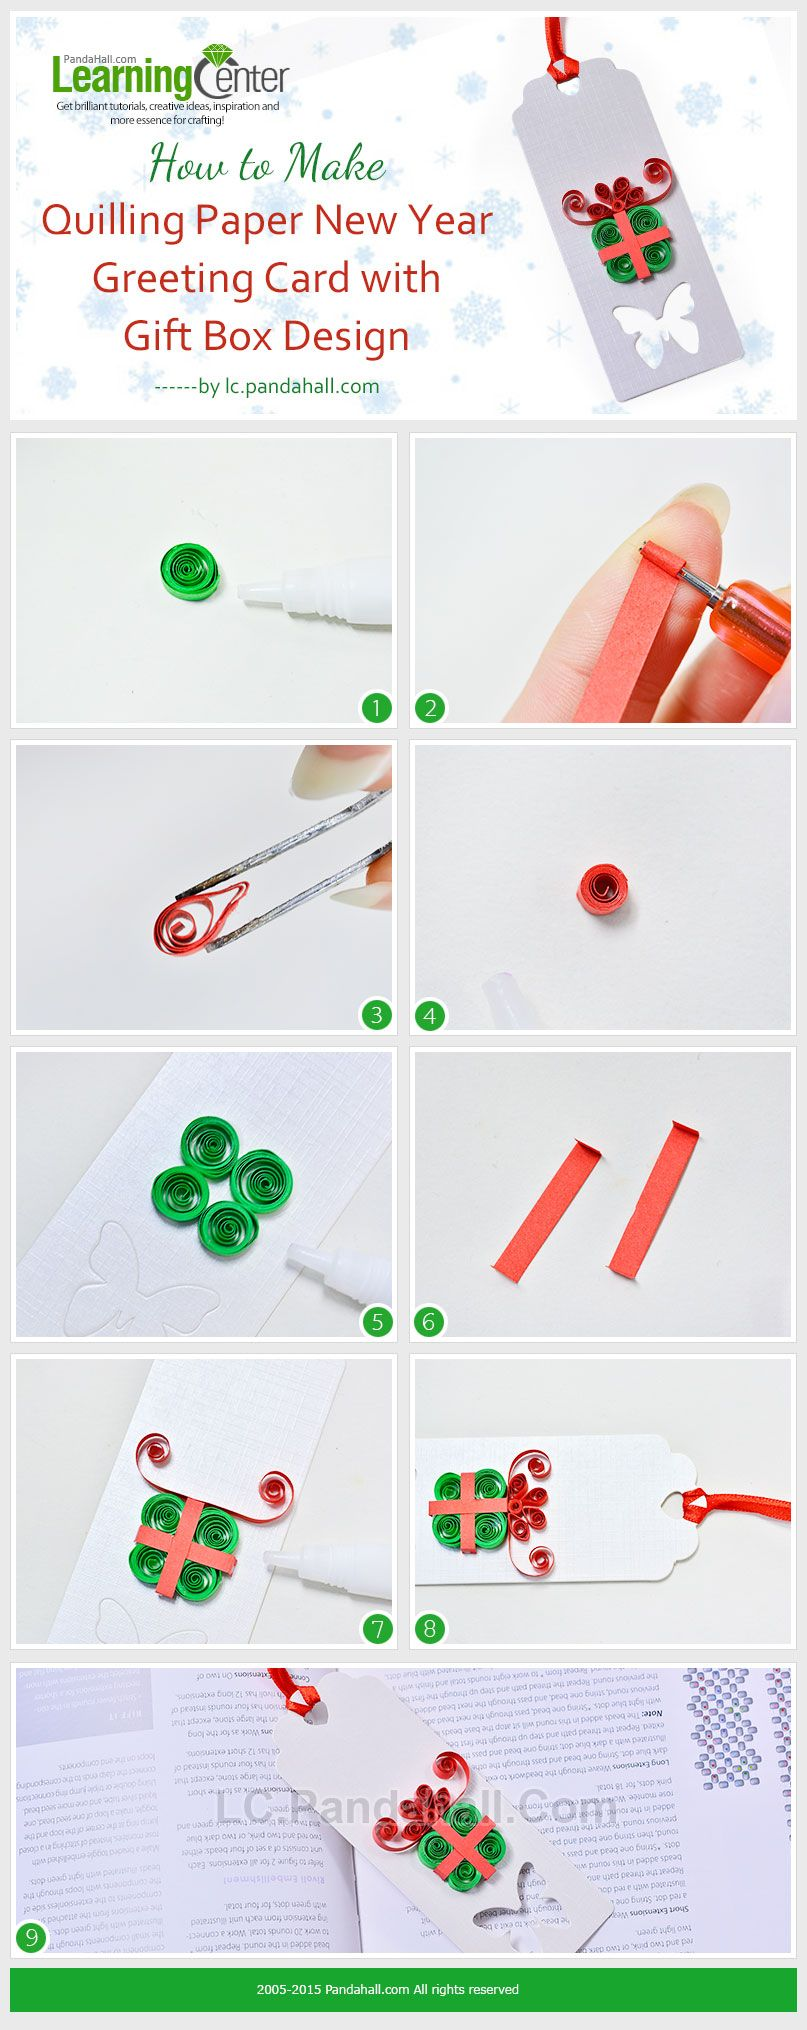 How To Make Quilling Paper New Year Greeting Card With Gift Box